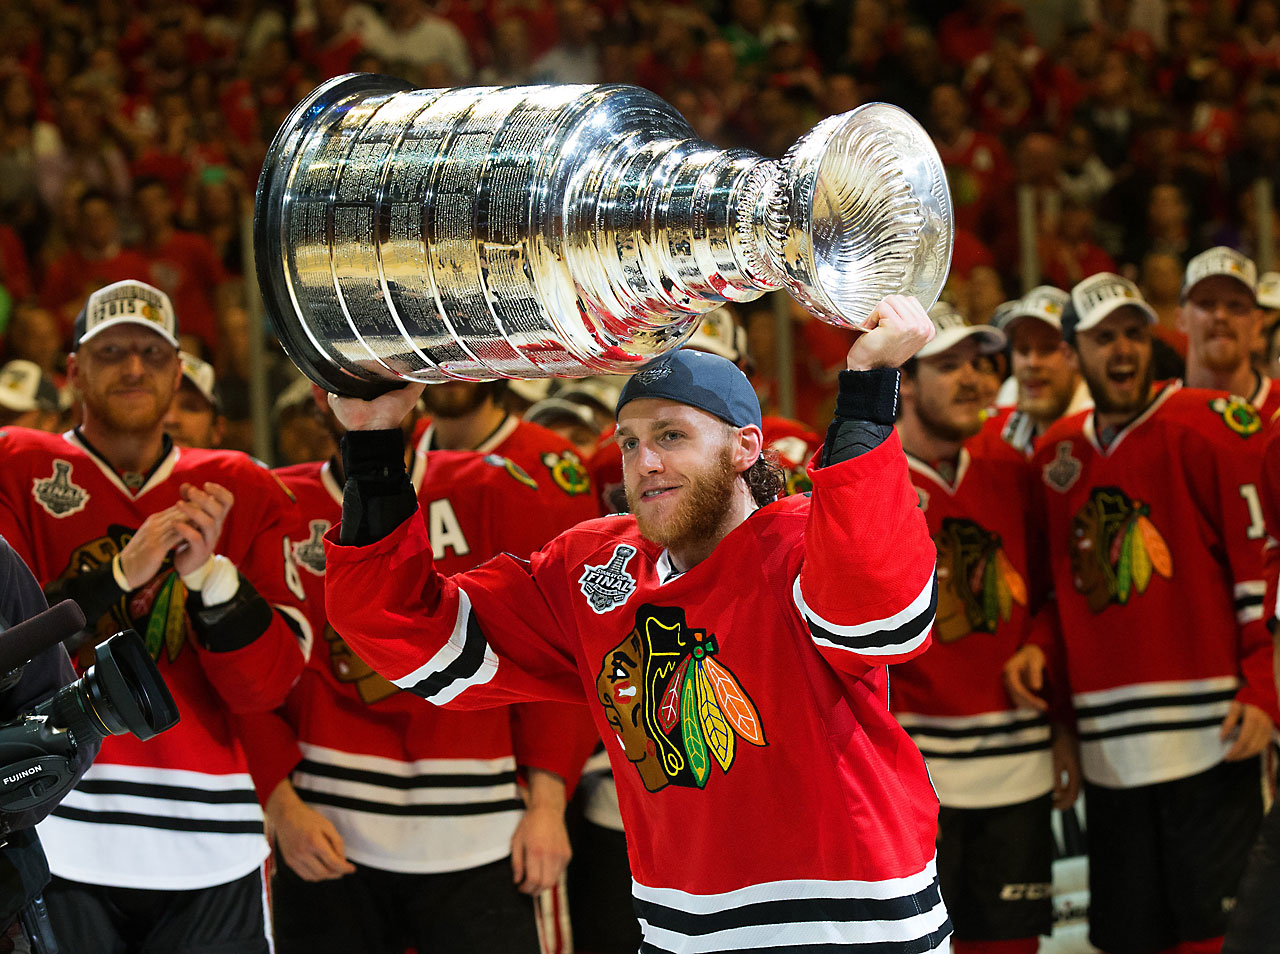 Patrick Kane had a goal and an assist in Game 6.